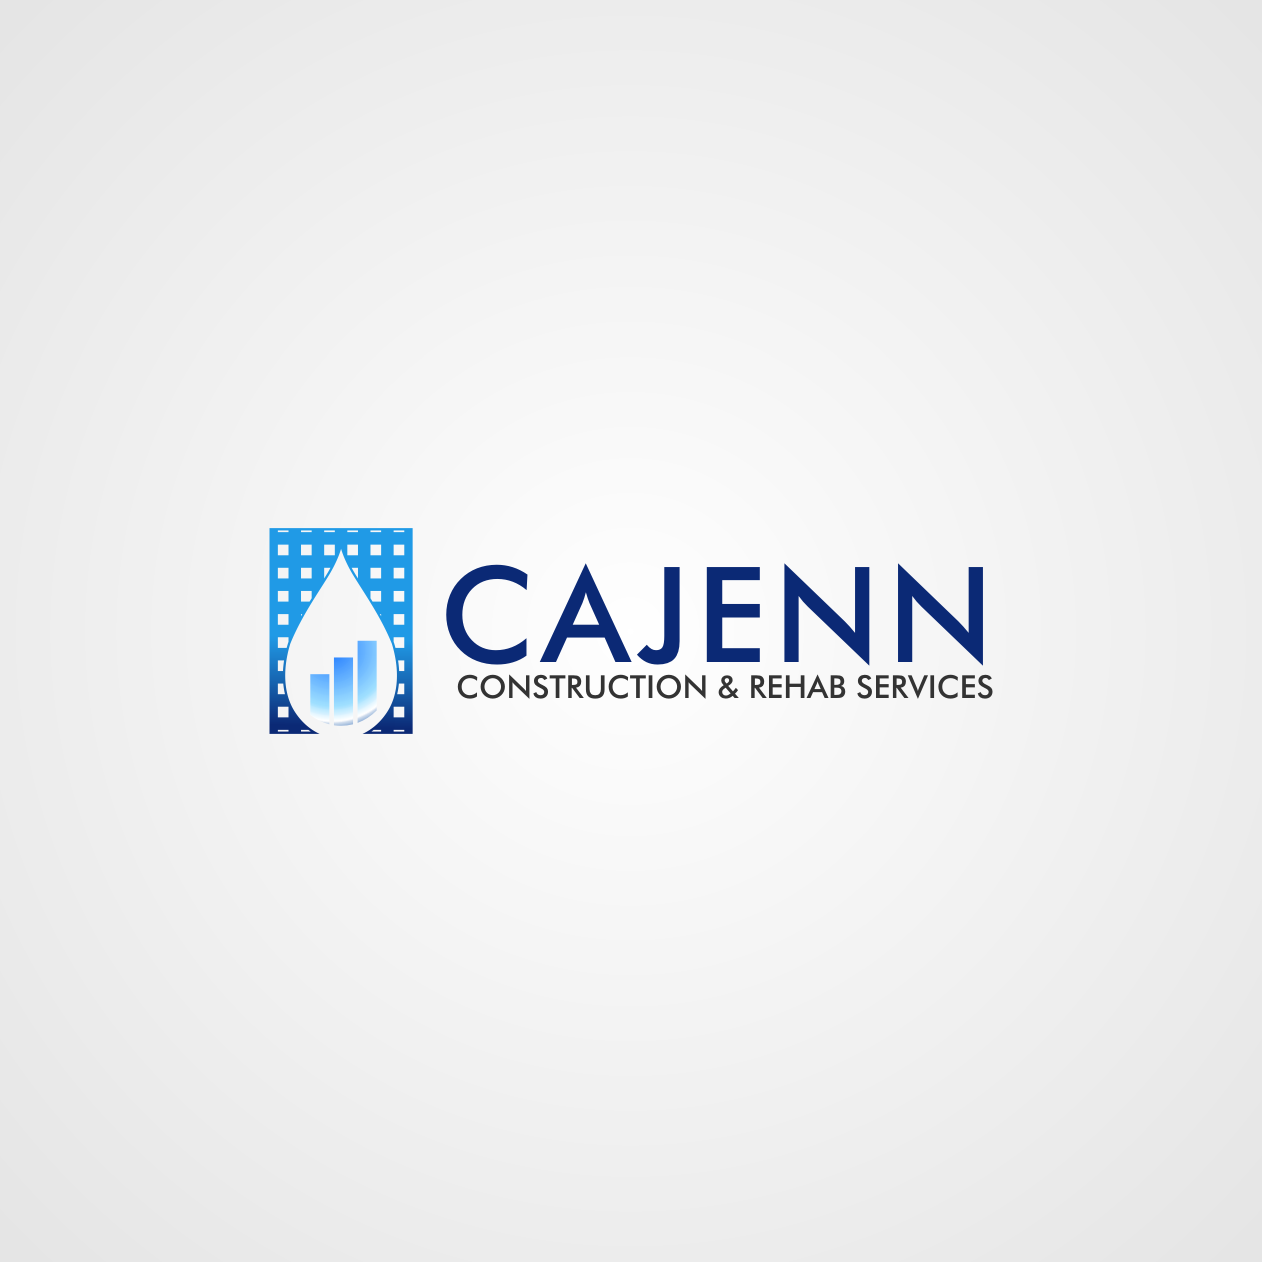 Logo Design by rifatz - Entry No. 271 in the Logo Design Contest New Logo Design for CaJenn Construction & Rehab Services.